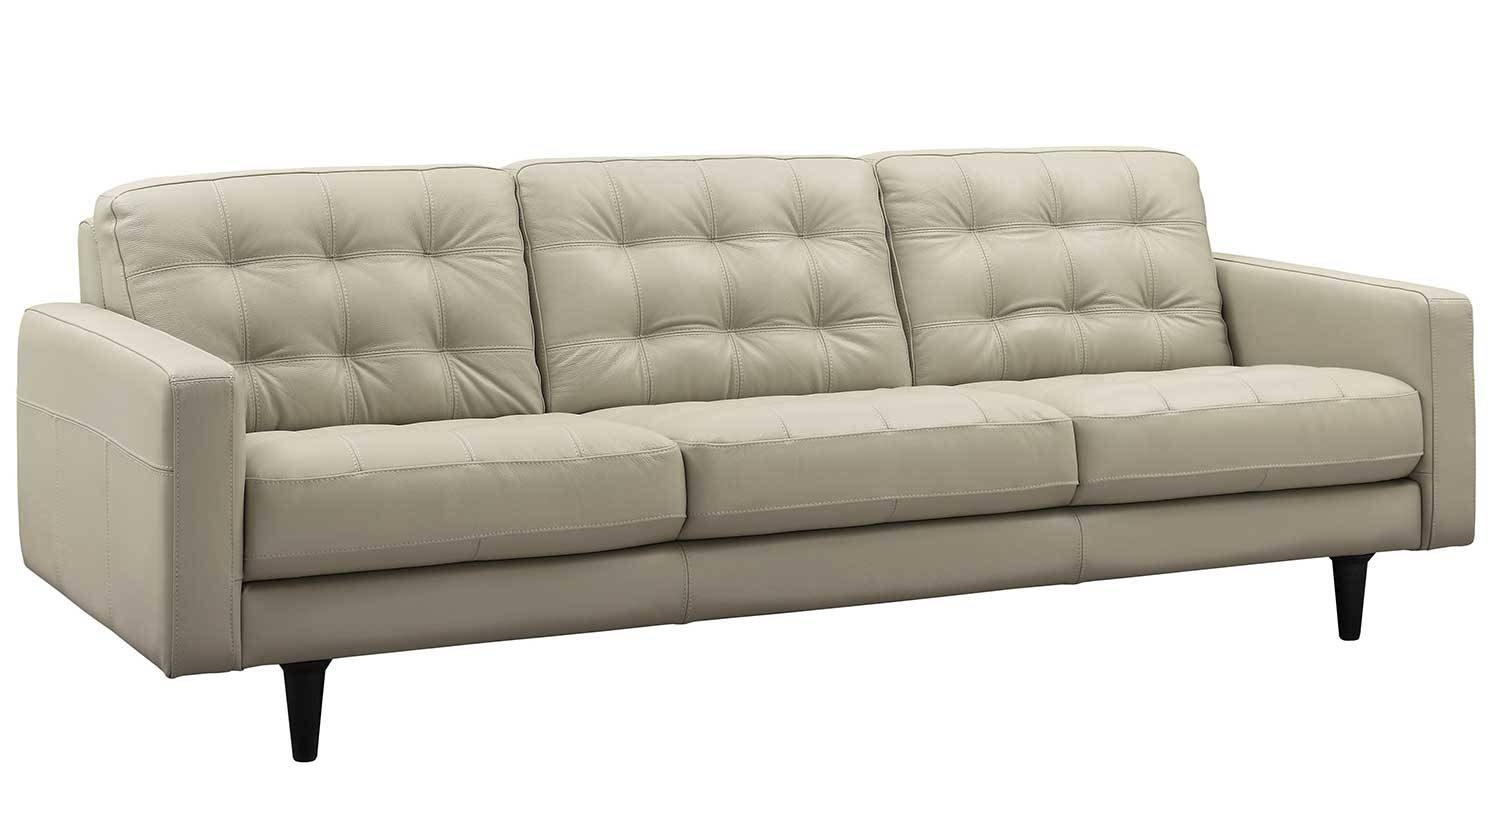 Circle Furniture – Fairfield Sofa | Leather Sofas Ma | Boston Intended For Circle Sofas (View 2 of 25)